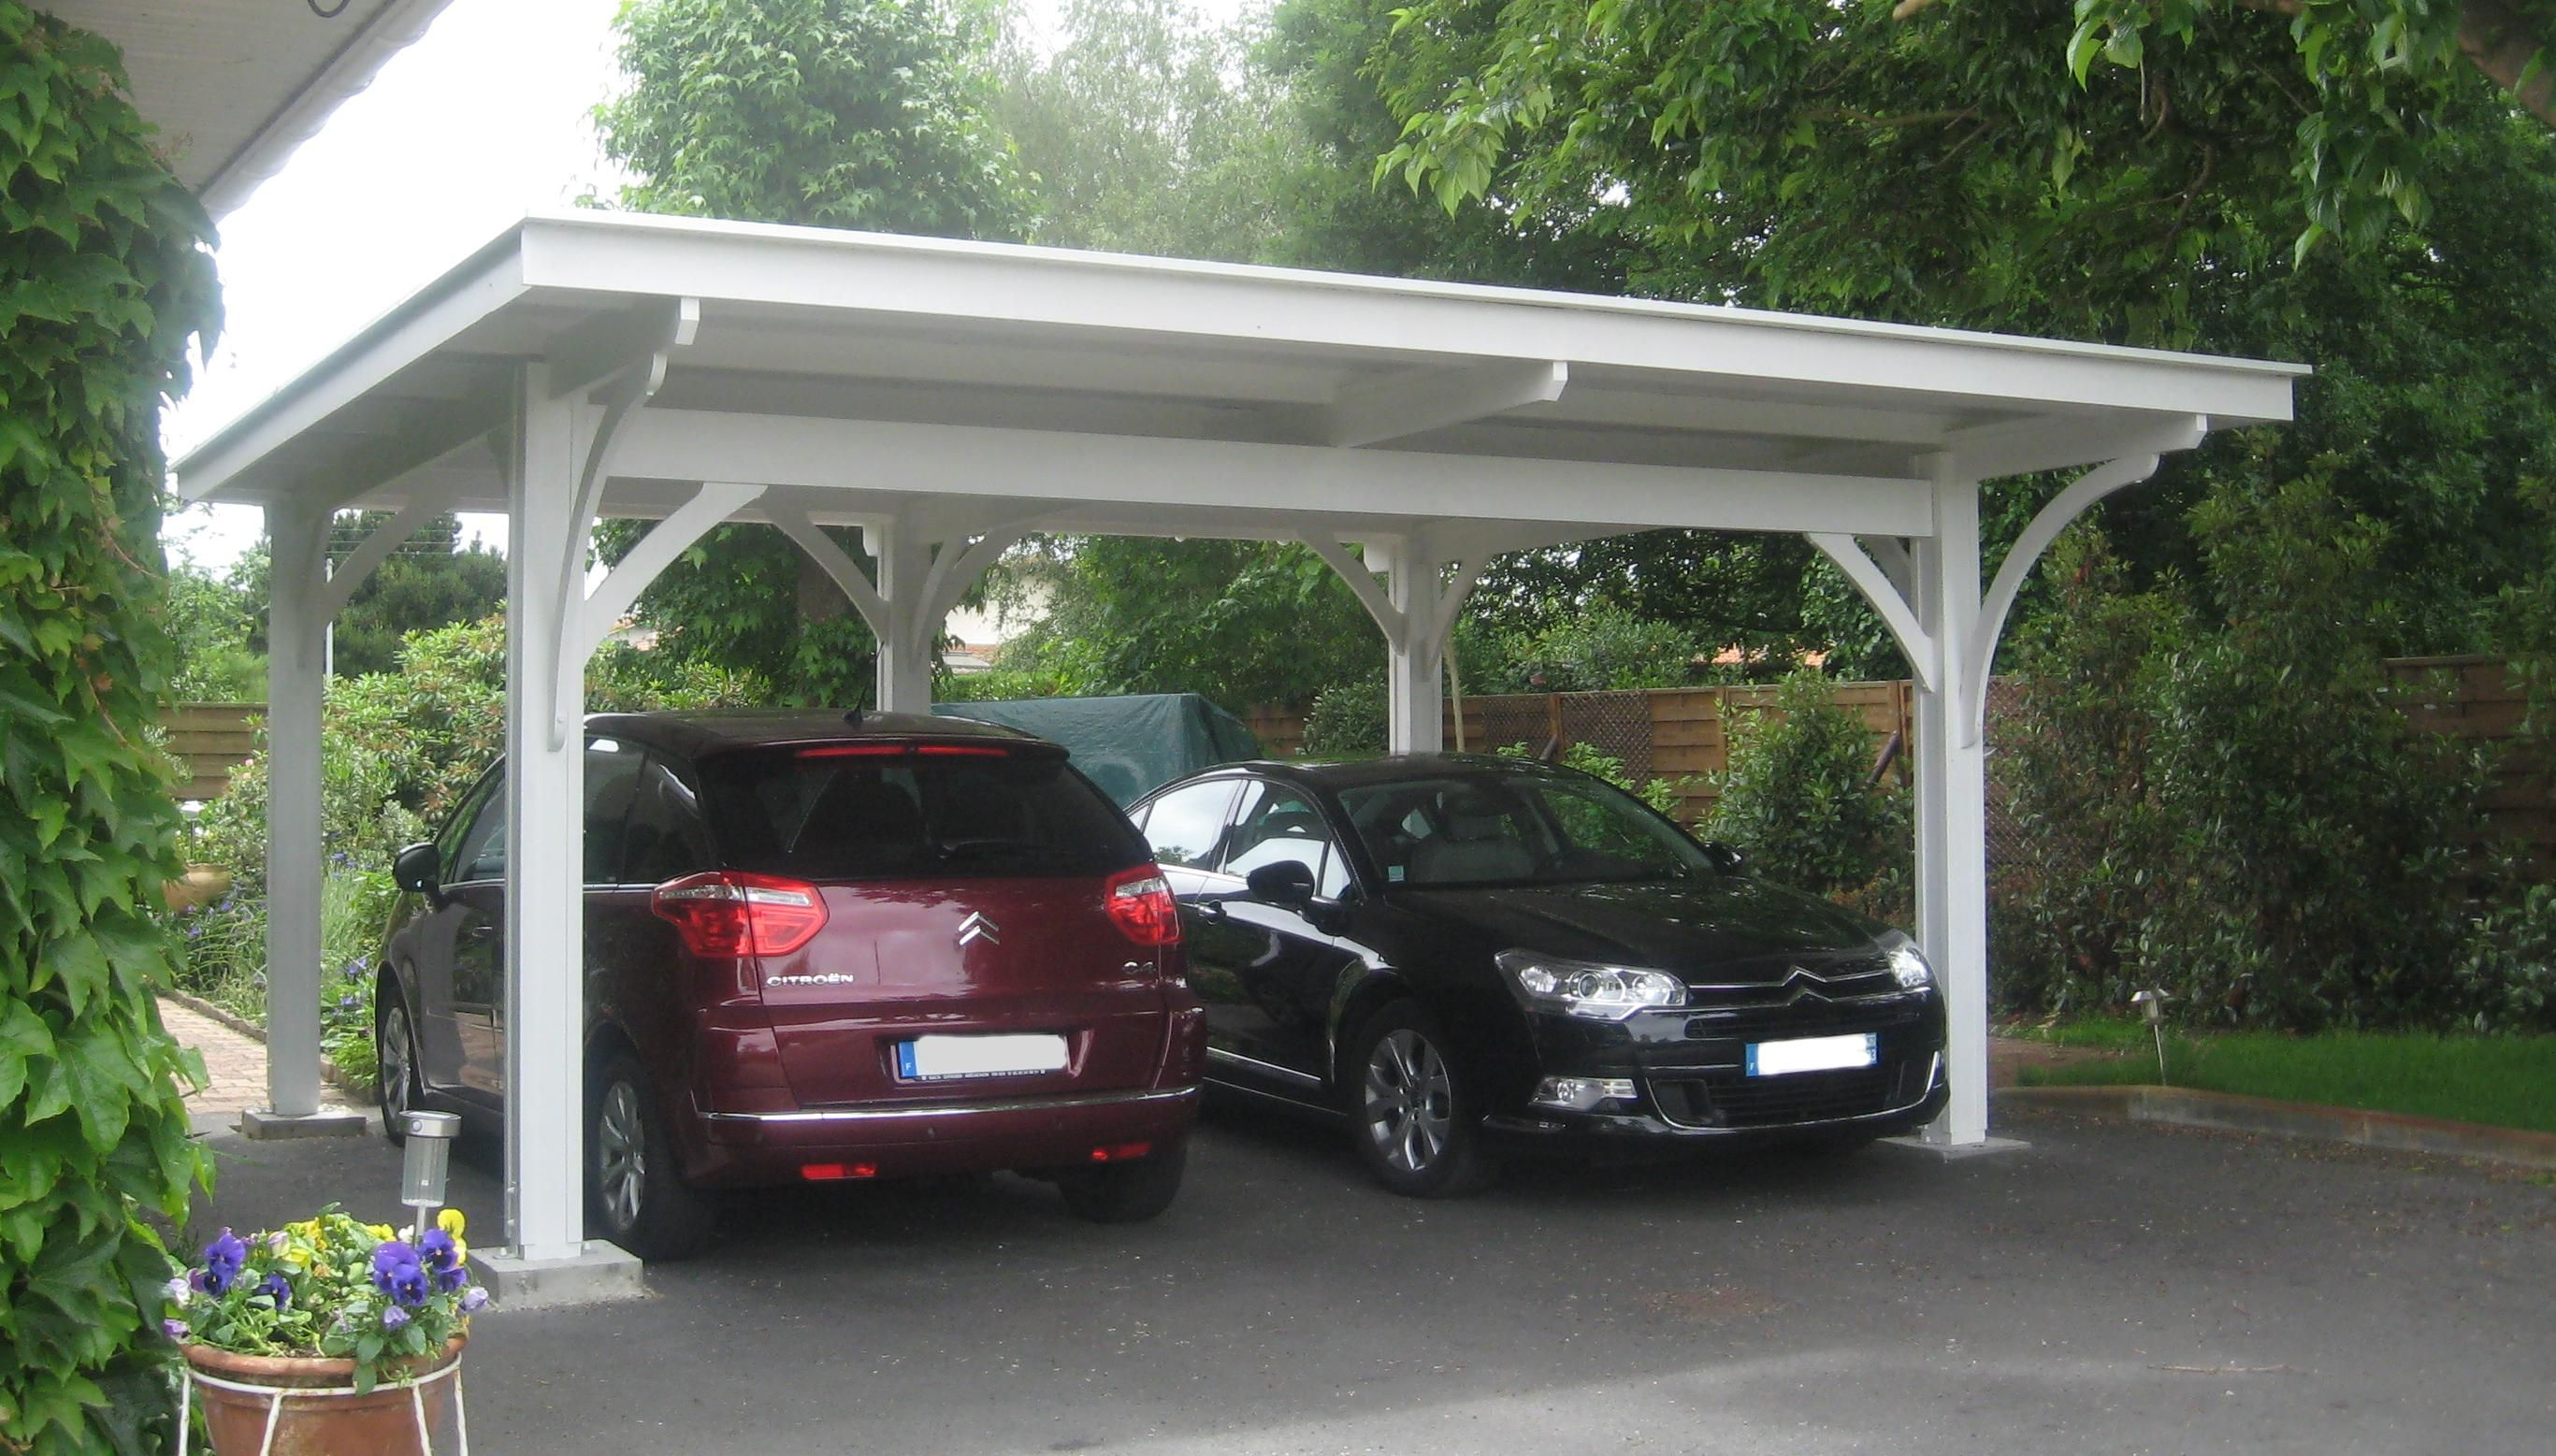 Fabricant Garage Bois Awesome Carport Designs That Perfect At Your New Houses Fabricant